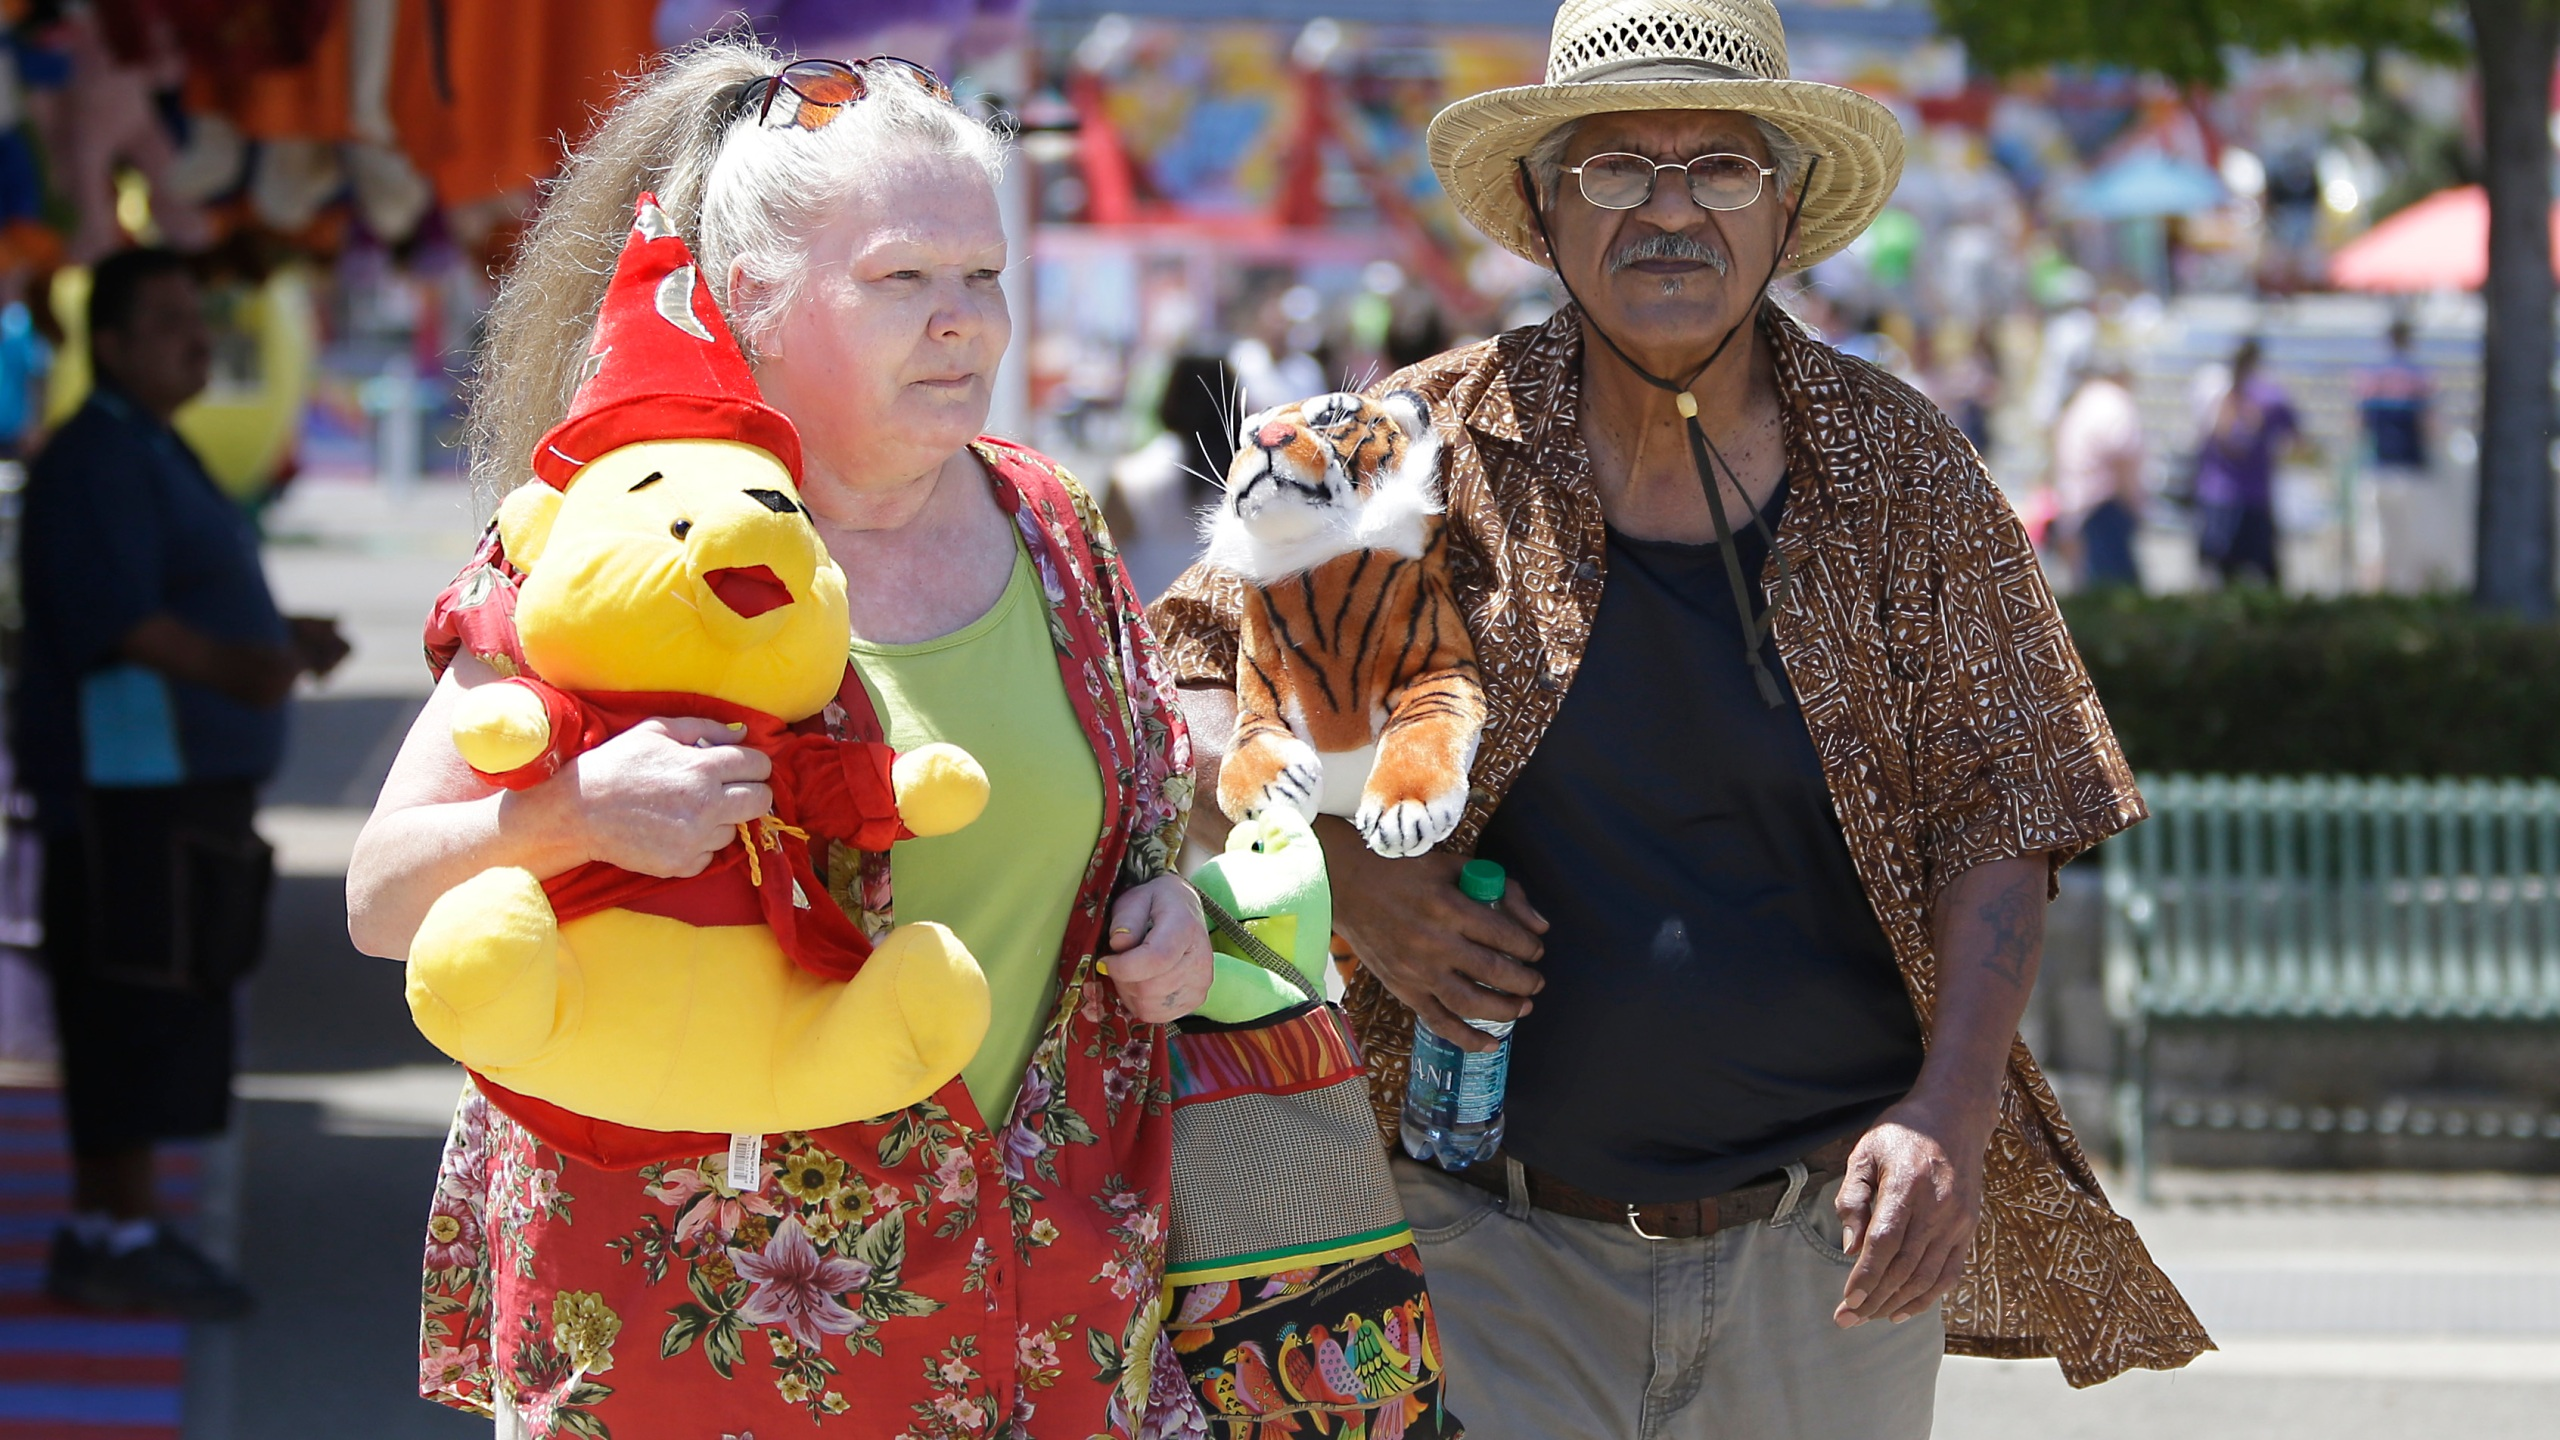 Joanne Hayes and Walter DeLaGarza carry their prizes won at one of the carnival games at the California State Fair on July 10, 2015, in Sacramento, Calif. (AP Photo/Rich Pedroncelli)